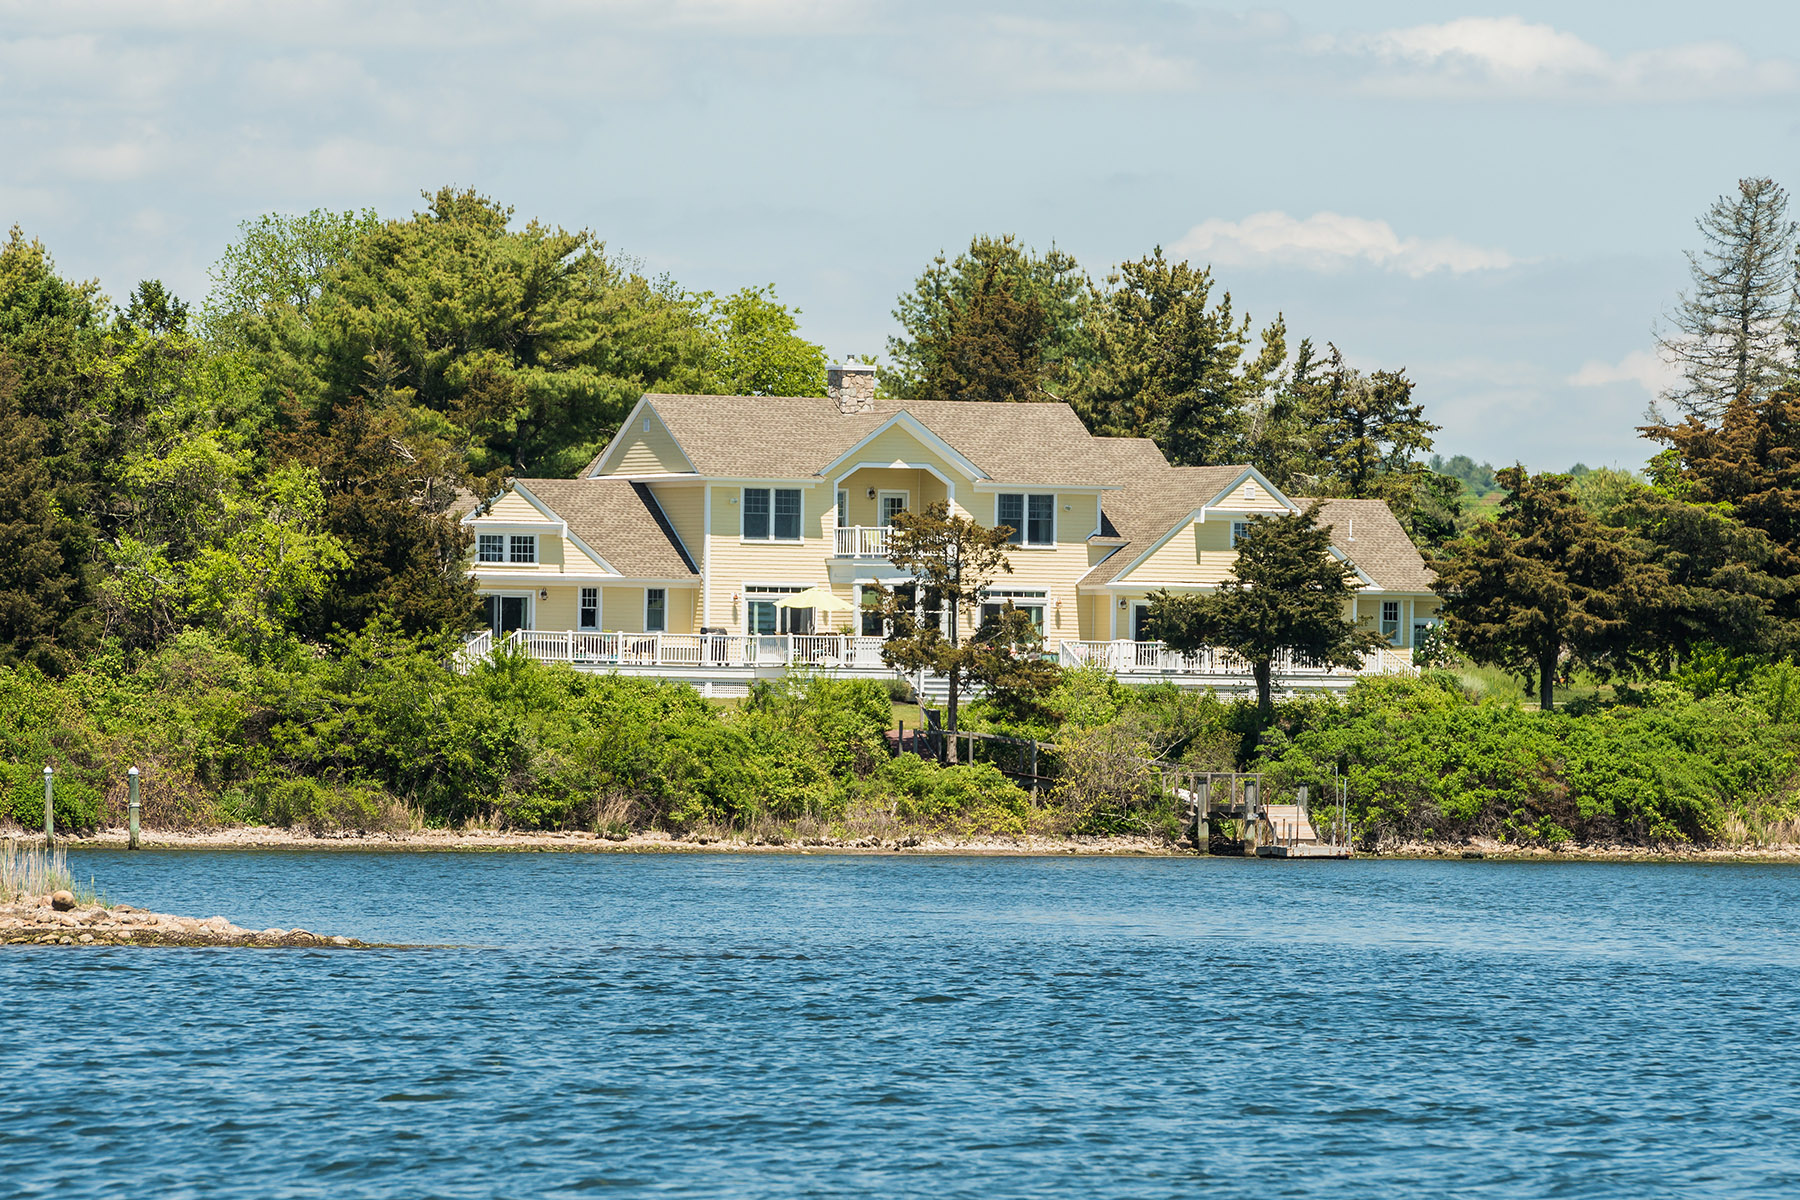 Single Family Home for Sale at 68 Gray's Point Rd, Charlestown, RI Charlestown, 02813 United States